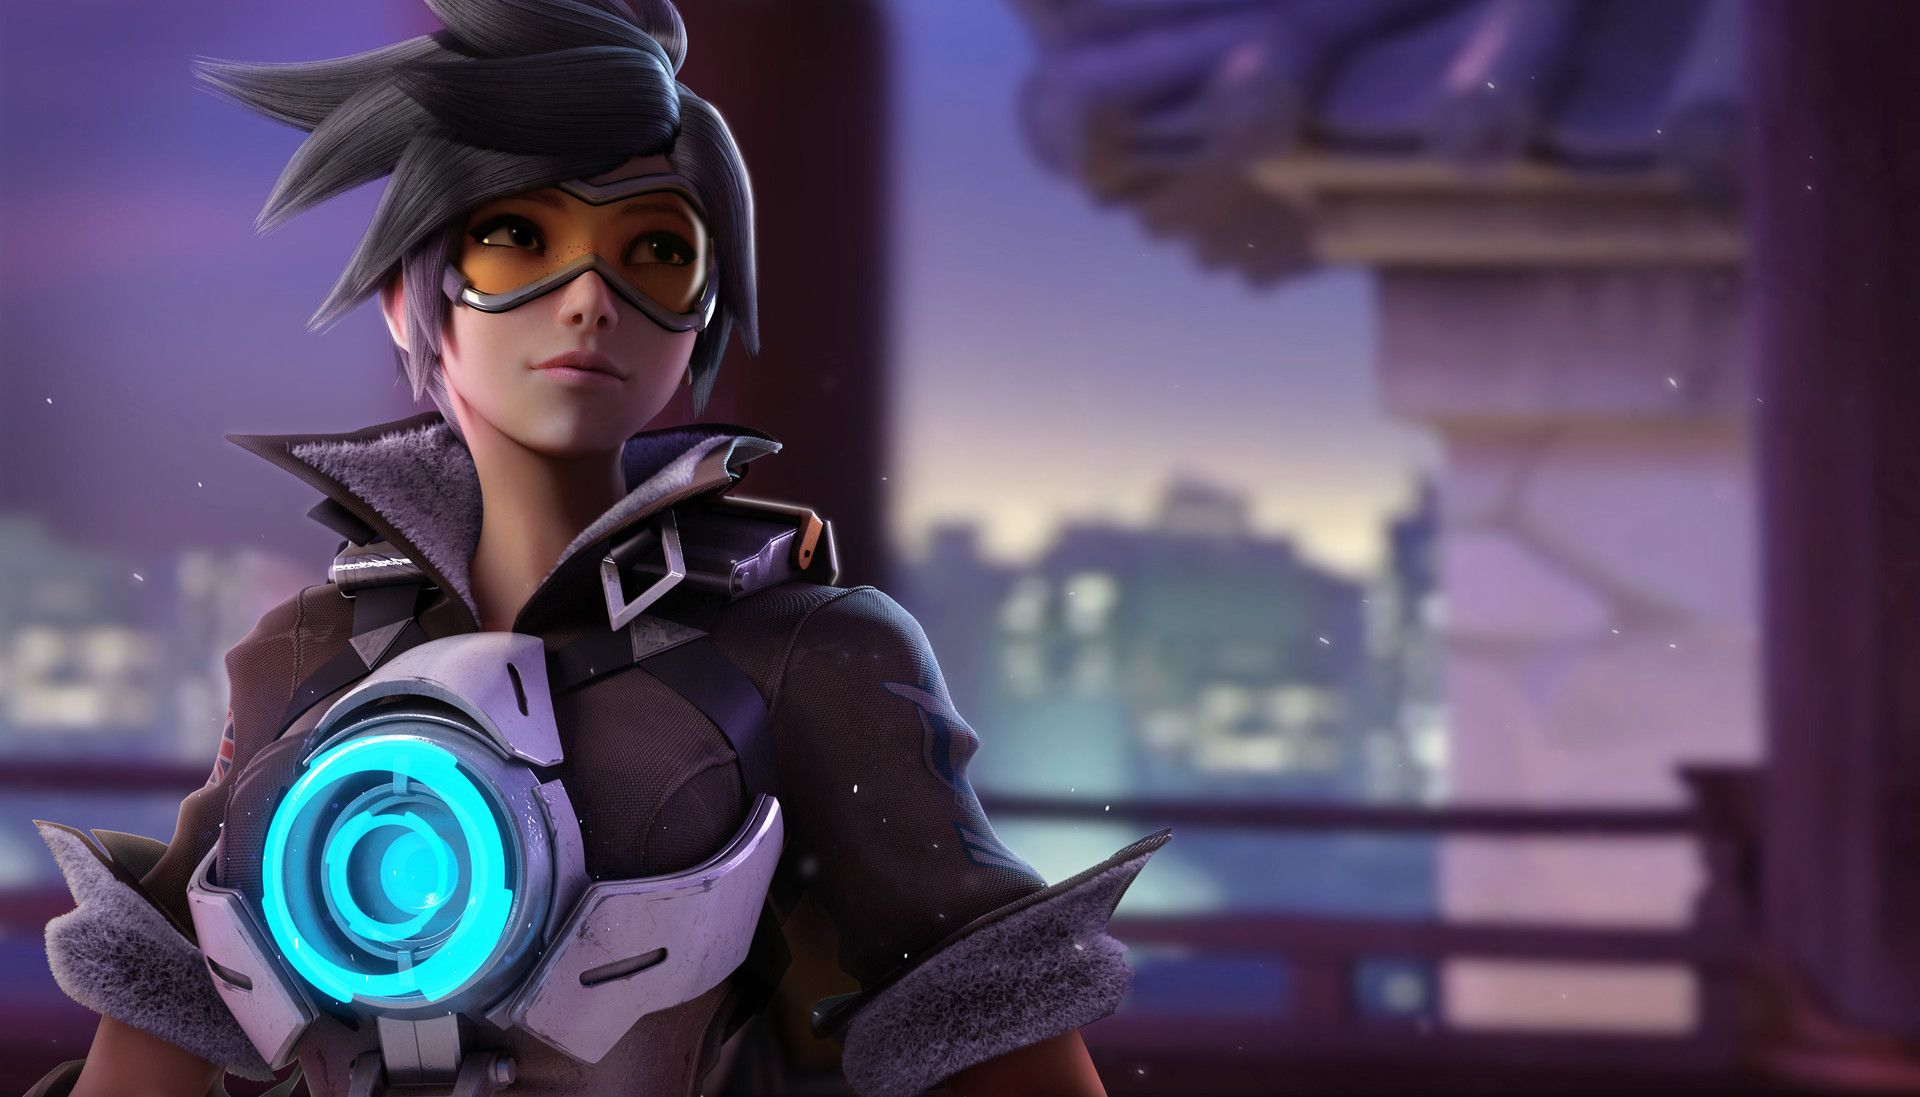 Tracer In Hanamura Kevin Lumoindong Overwatch Wallpapers Overwatch Tracer Overwatch Fan Art